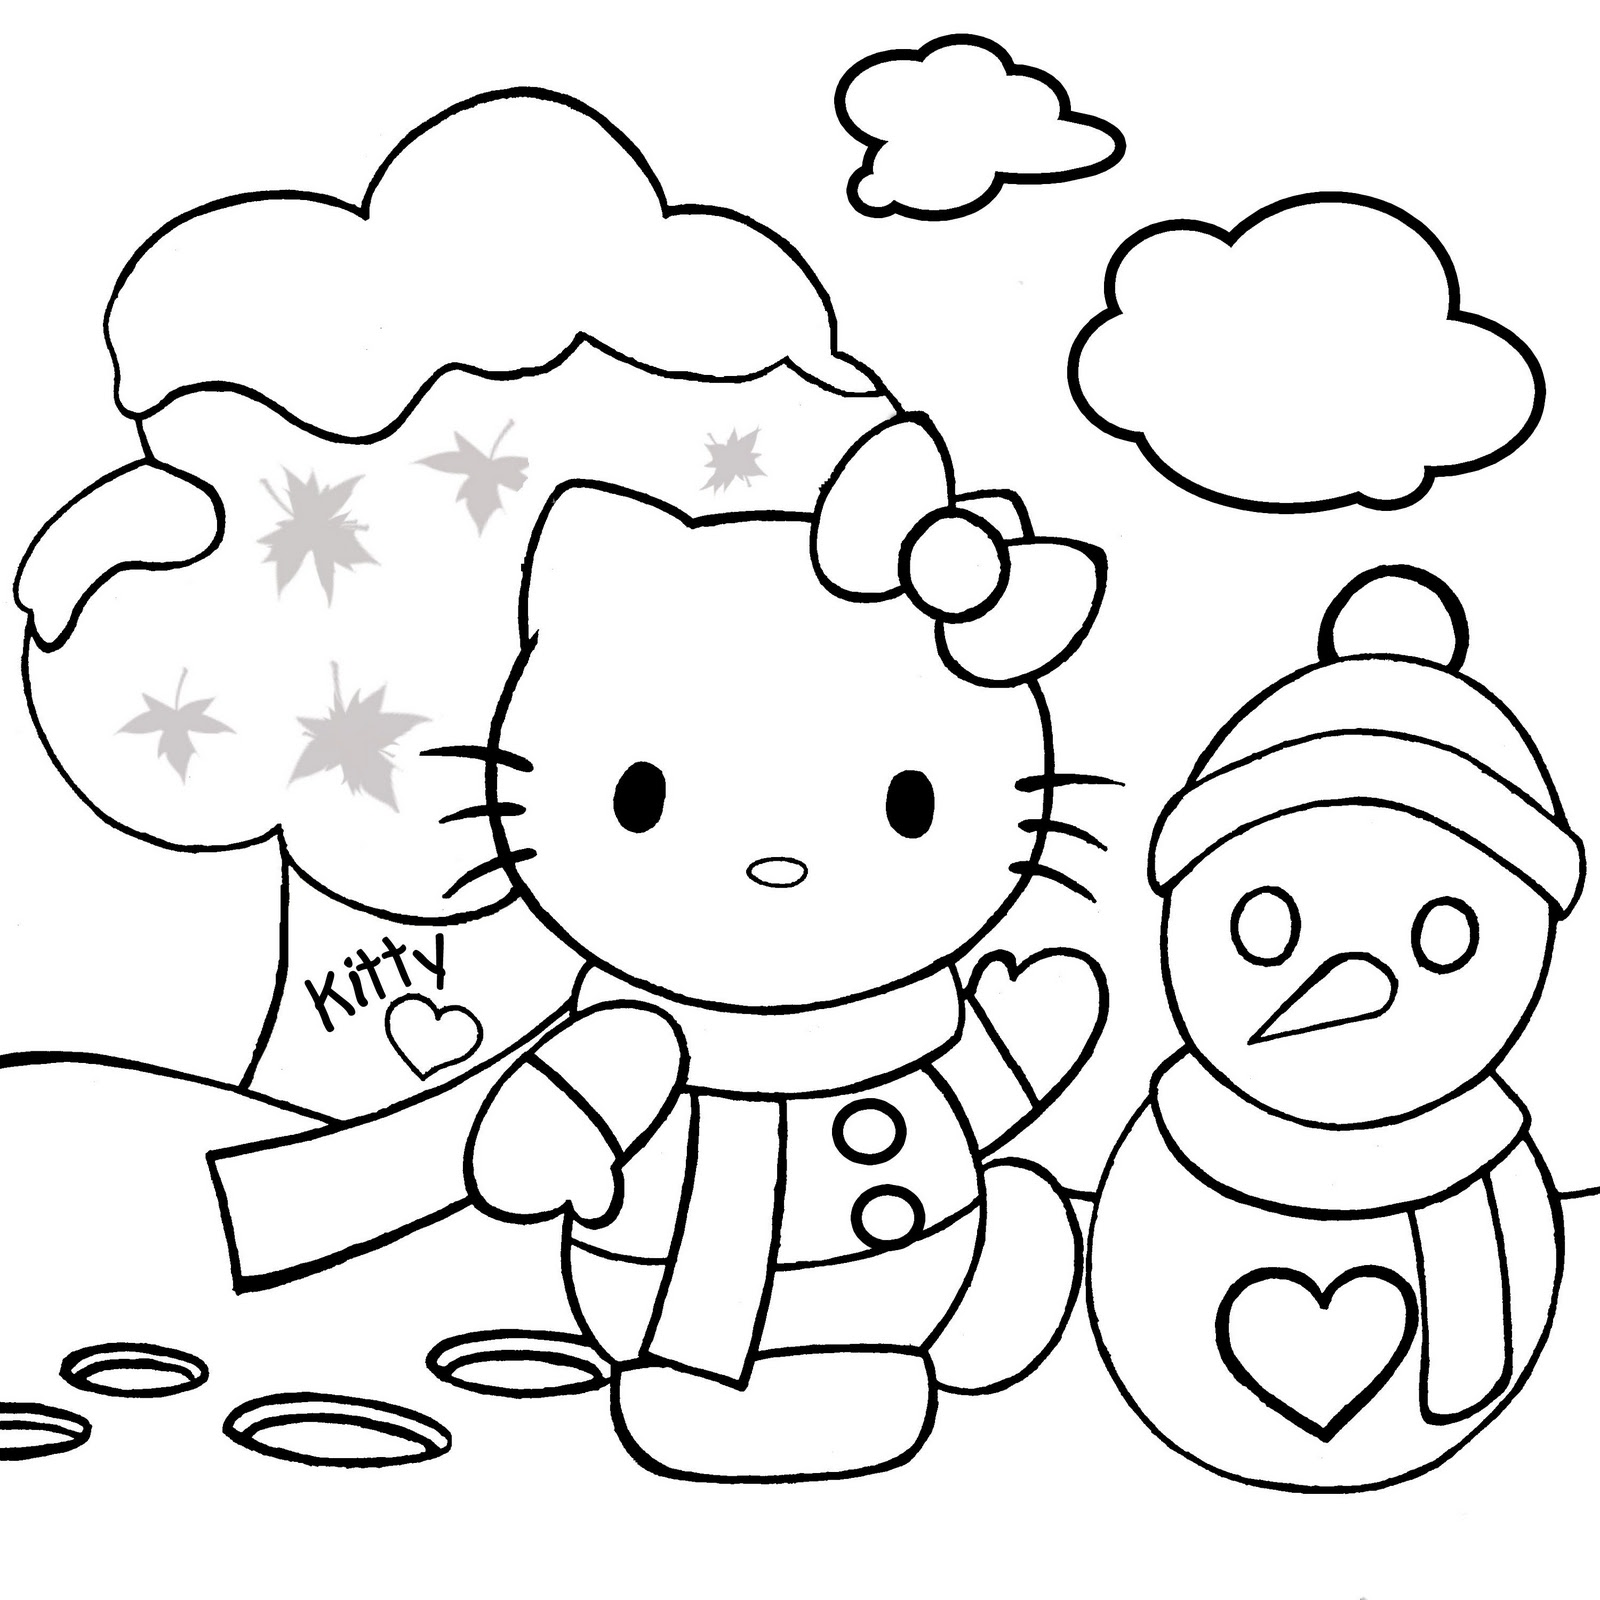 hello kitty christmas colouring pages hello kitty christmas coloring pages 1 hello kitty forever pages kitty colouring christmas hello